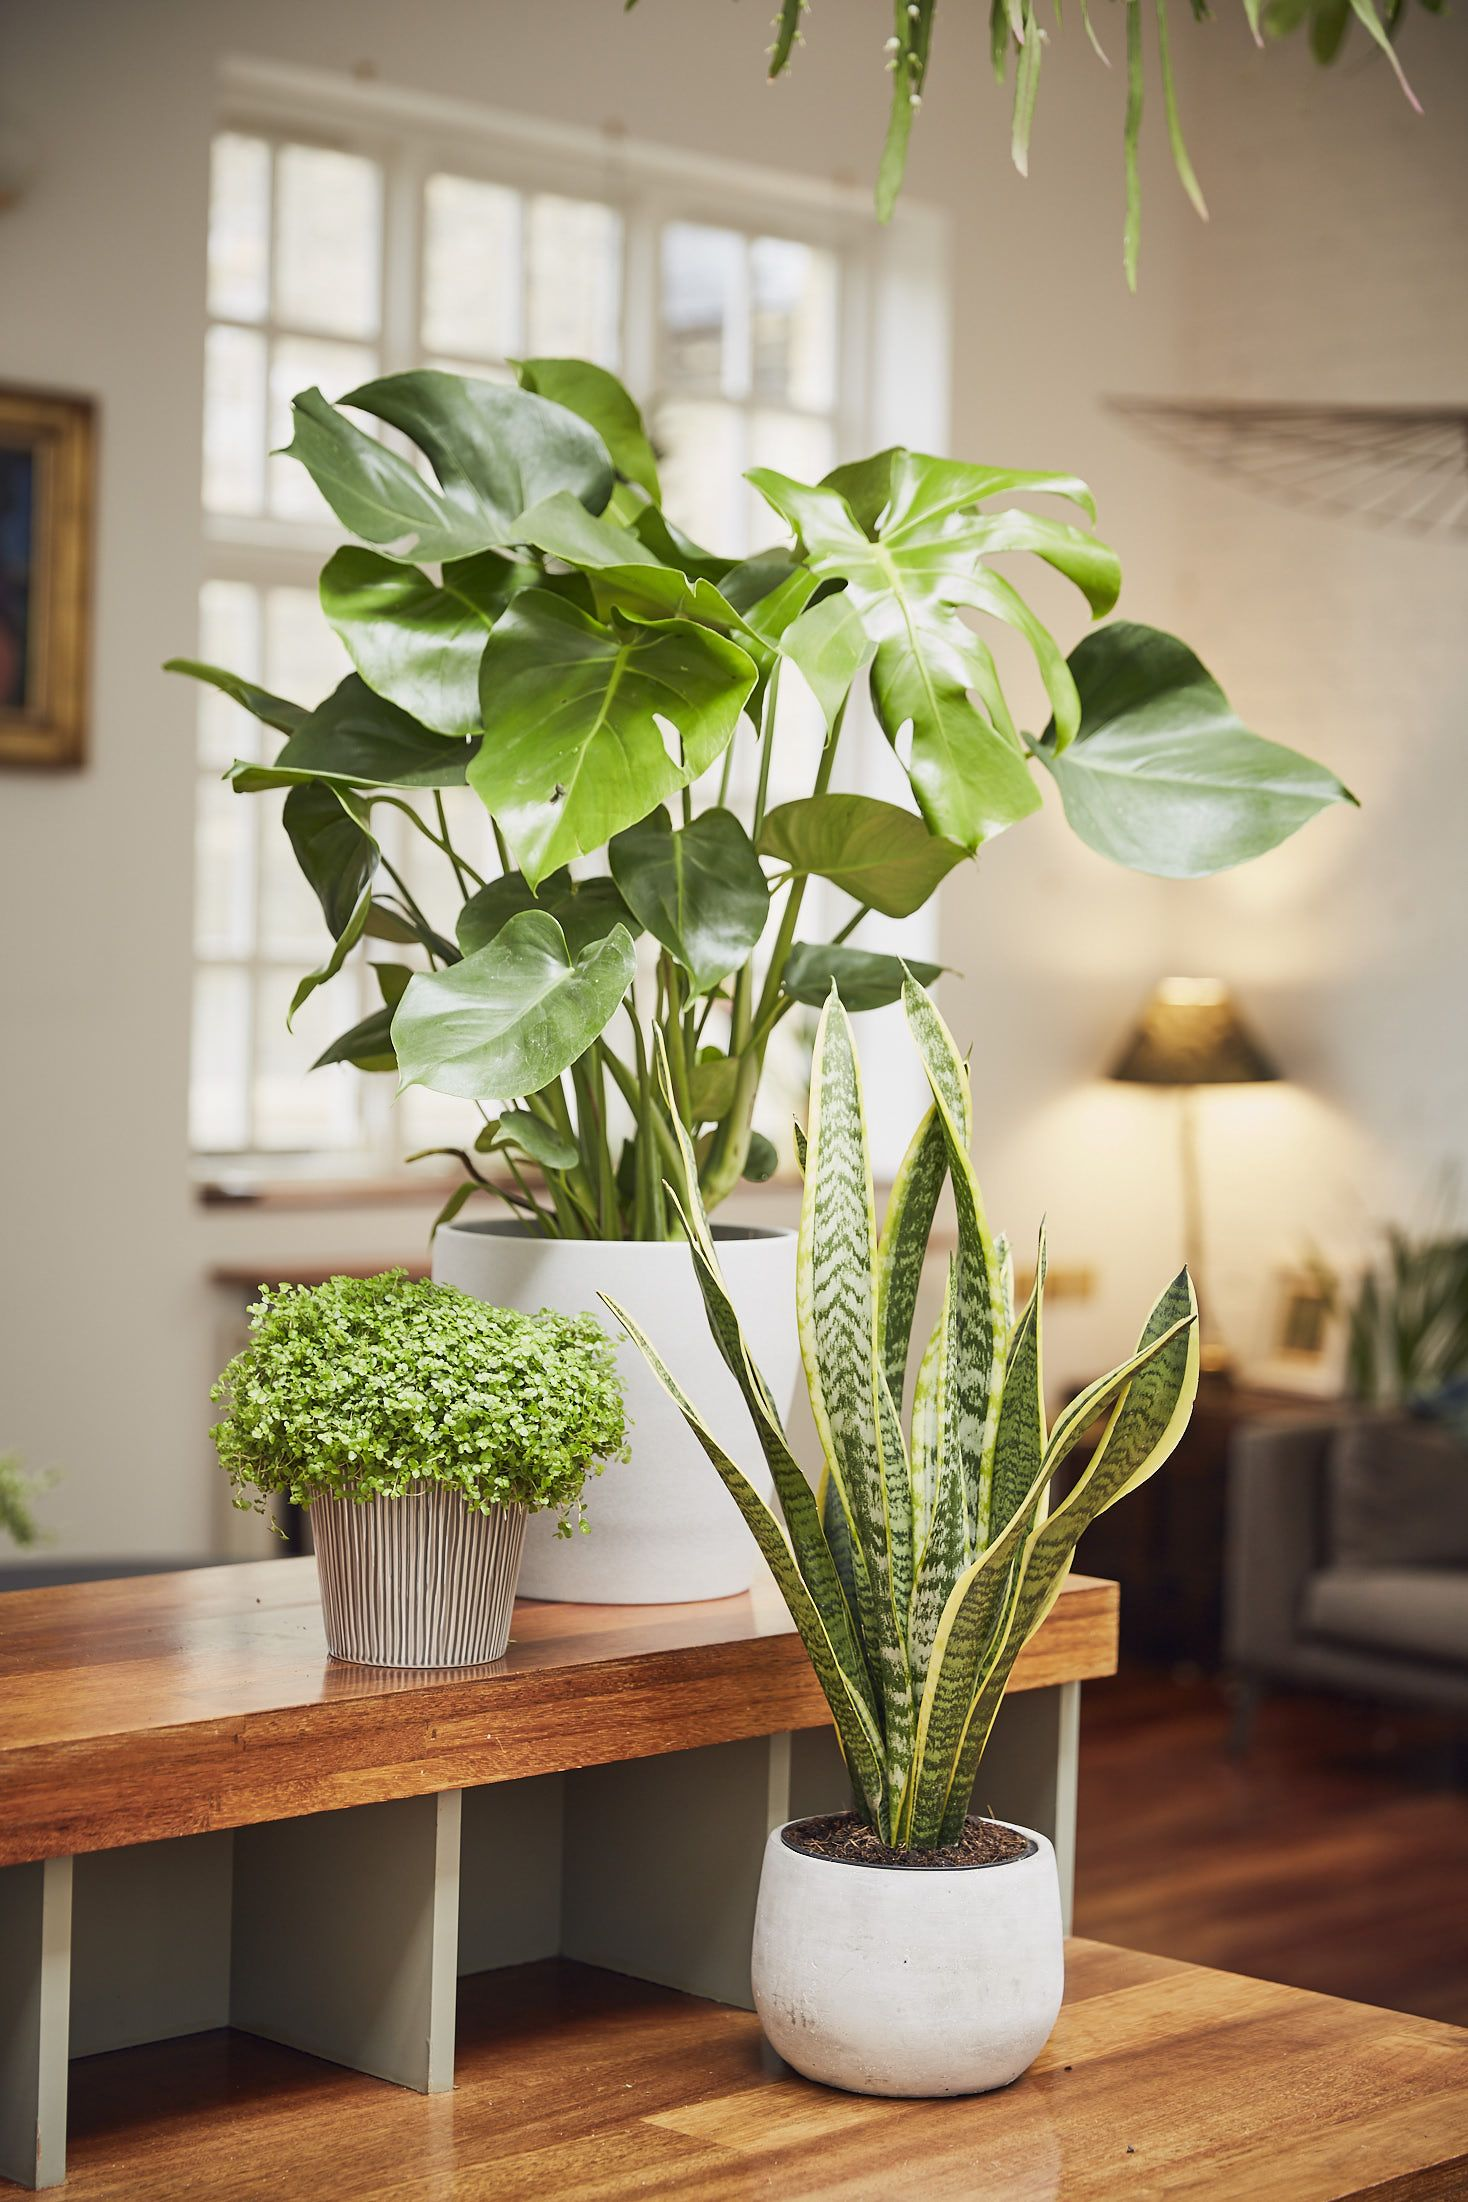 10 most popular houseplants on Instagram